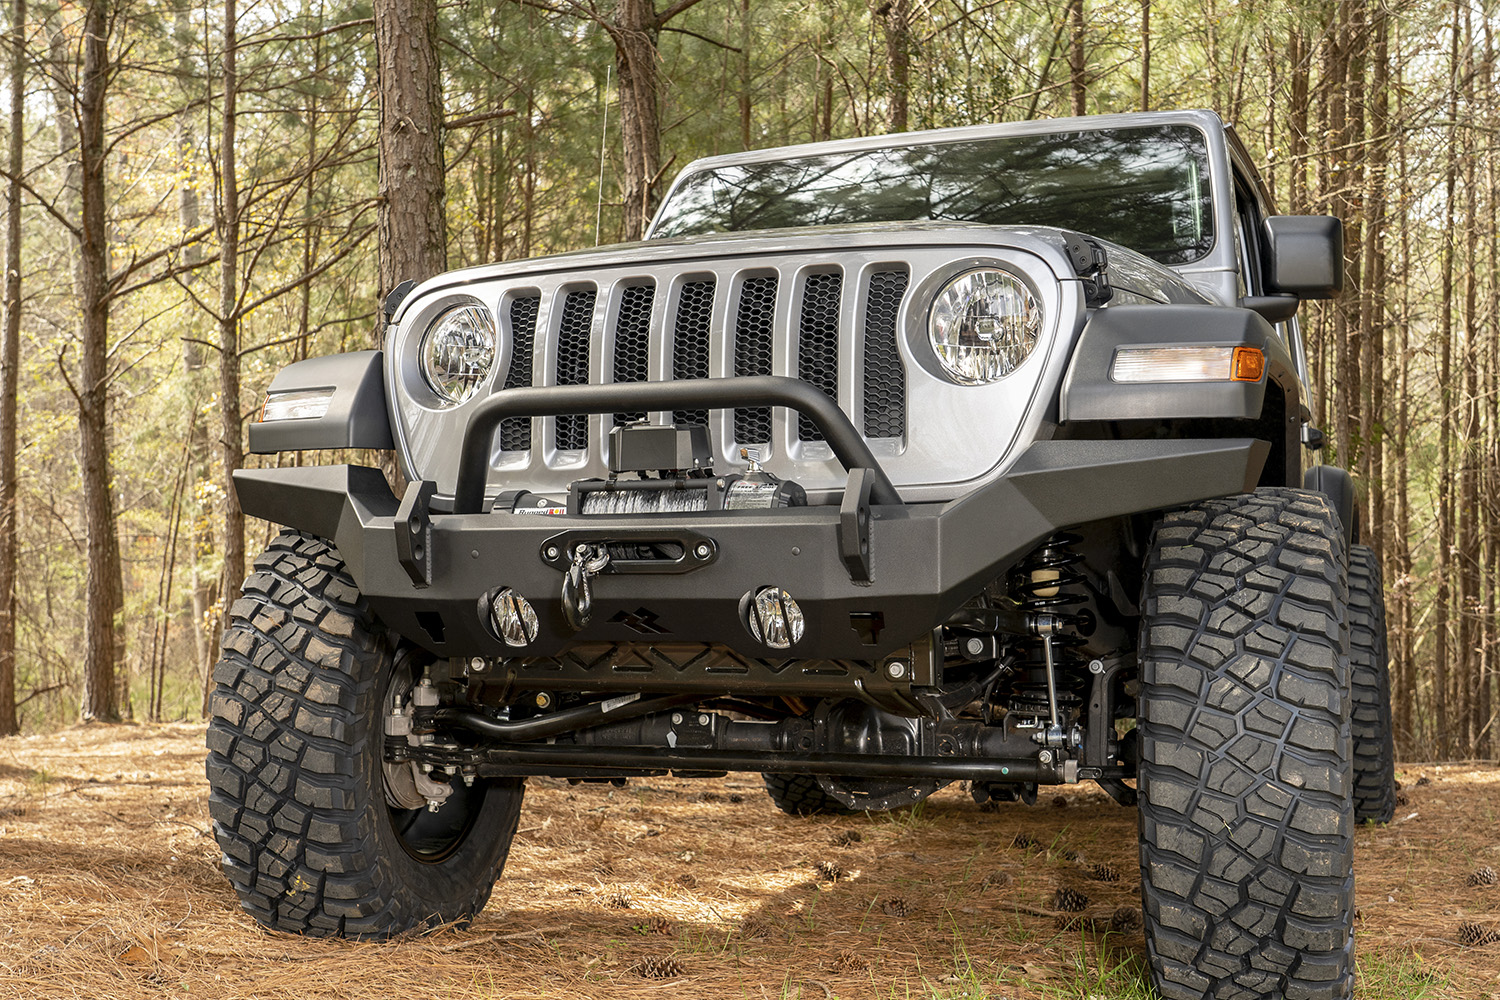 HD Bumper Full Width Front 07-18 Wrangler JK 18-19 Wrangler JL 2020 Gladiator JT Get two FREE Round LED lights (15209.01) with new HD Bumper for JL